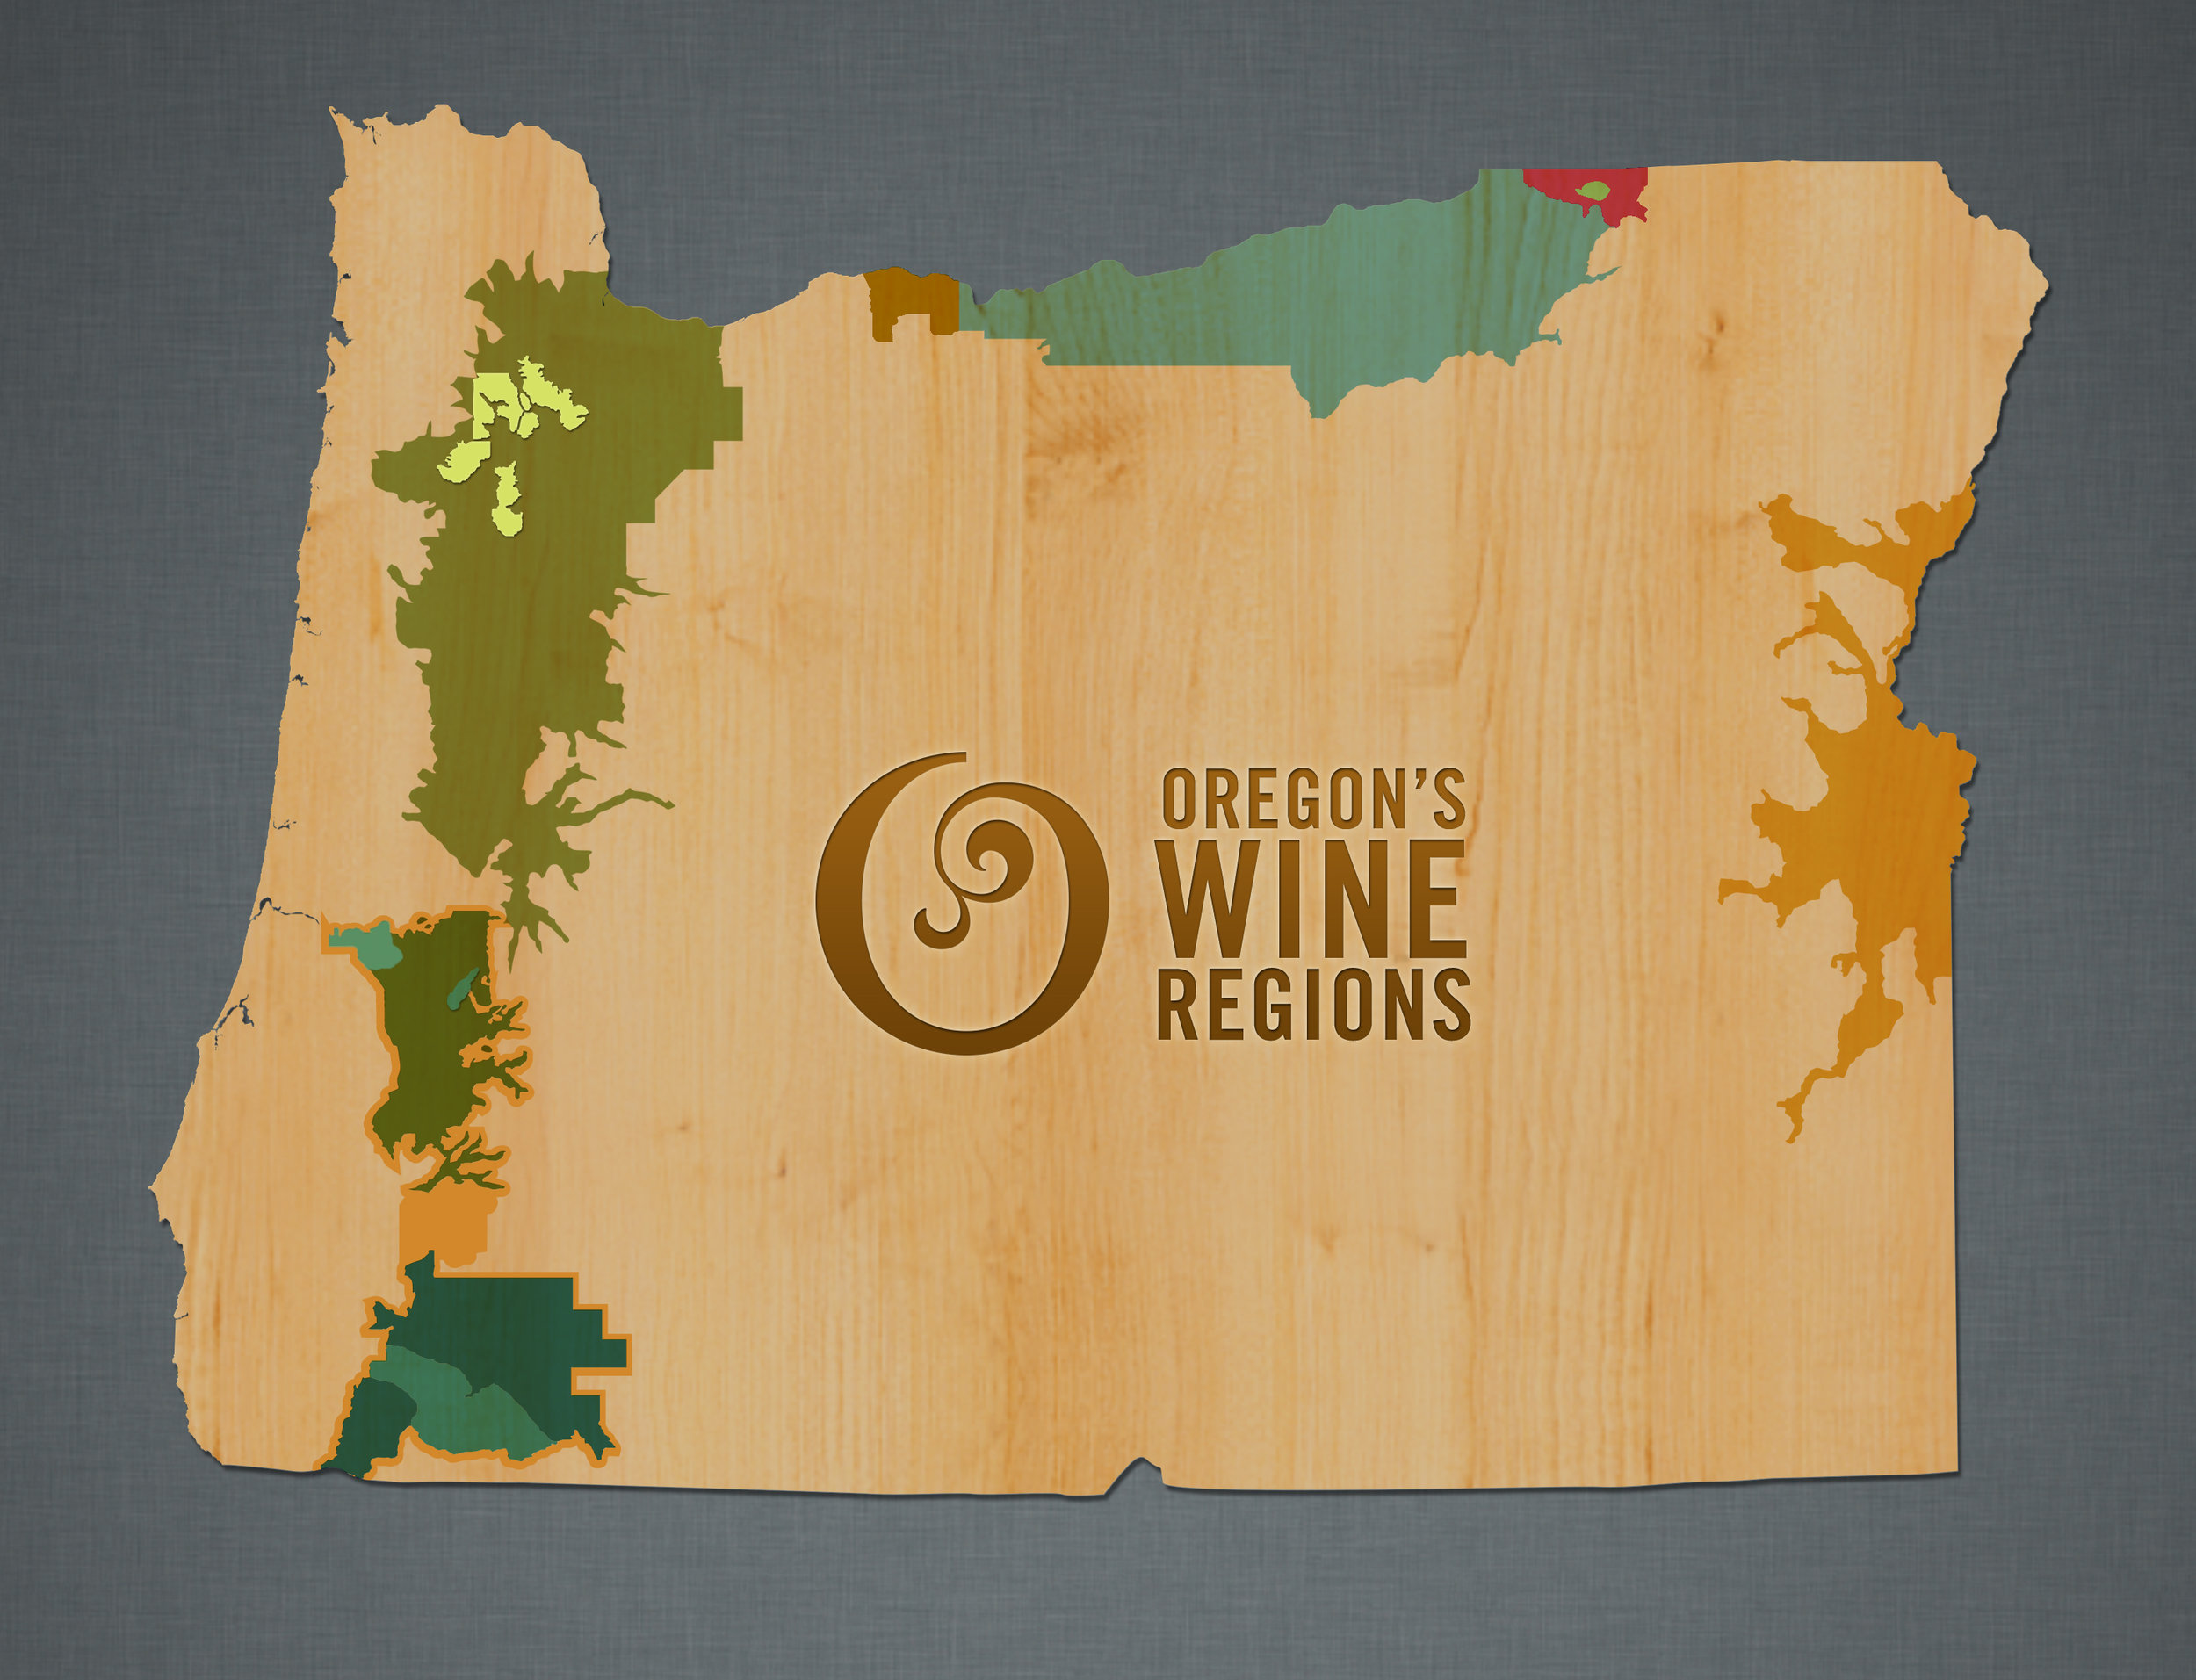 Oregon Wine Region map courtesy of  Oregon Wine . Most of the wine produced in Oregon comes from the Willamette Valley, which is in close proximity to Portland (in the yellow area).